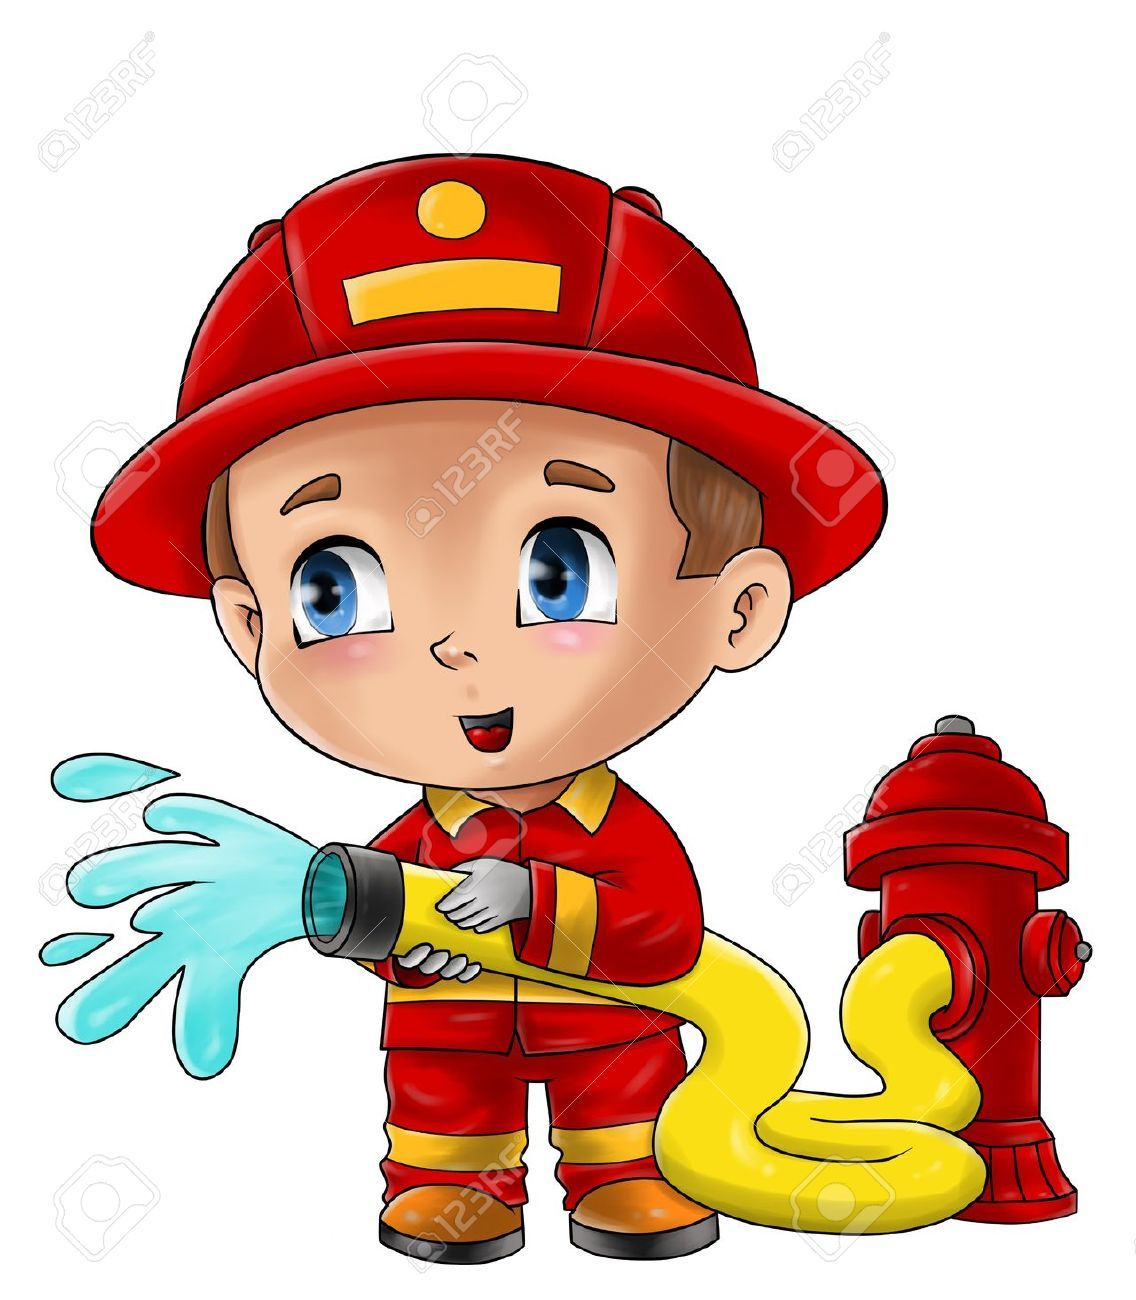 23++ Fire fighter clipart free information